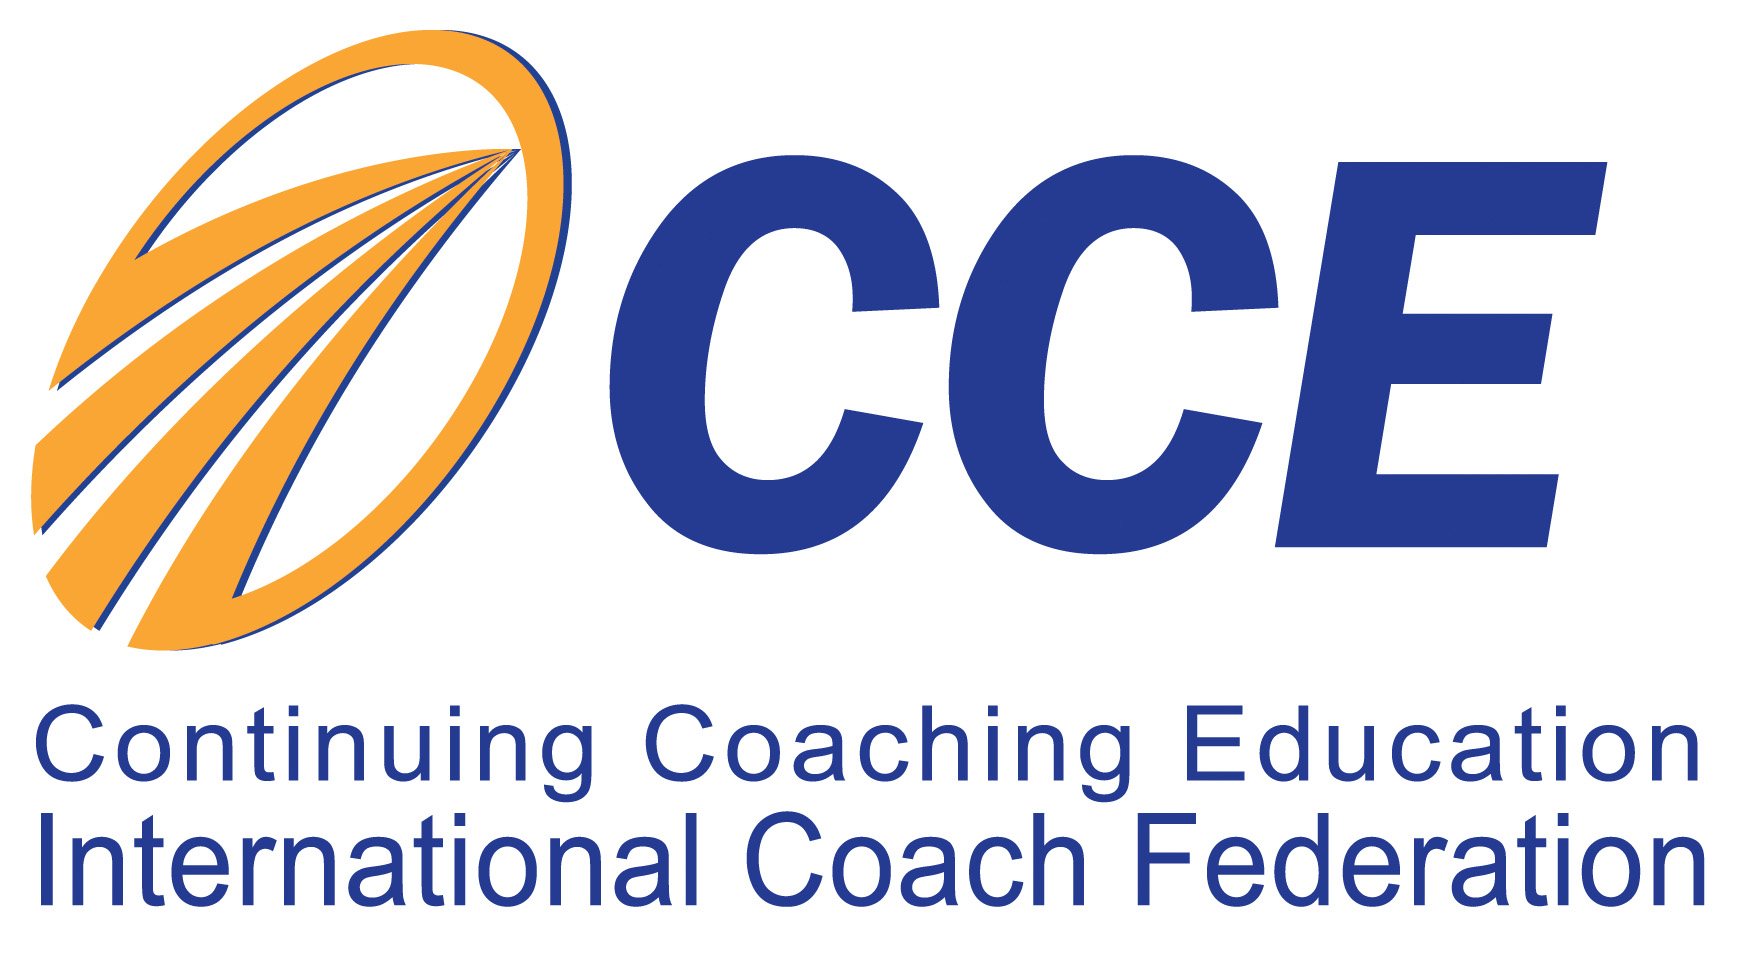 Continuing Coaching Education CCE